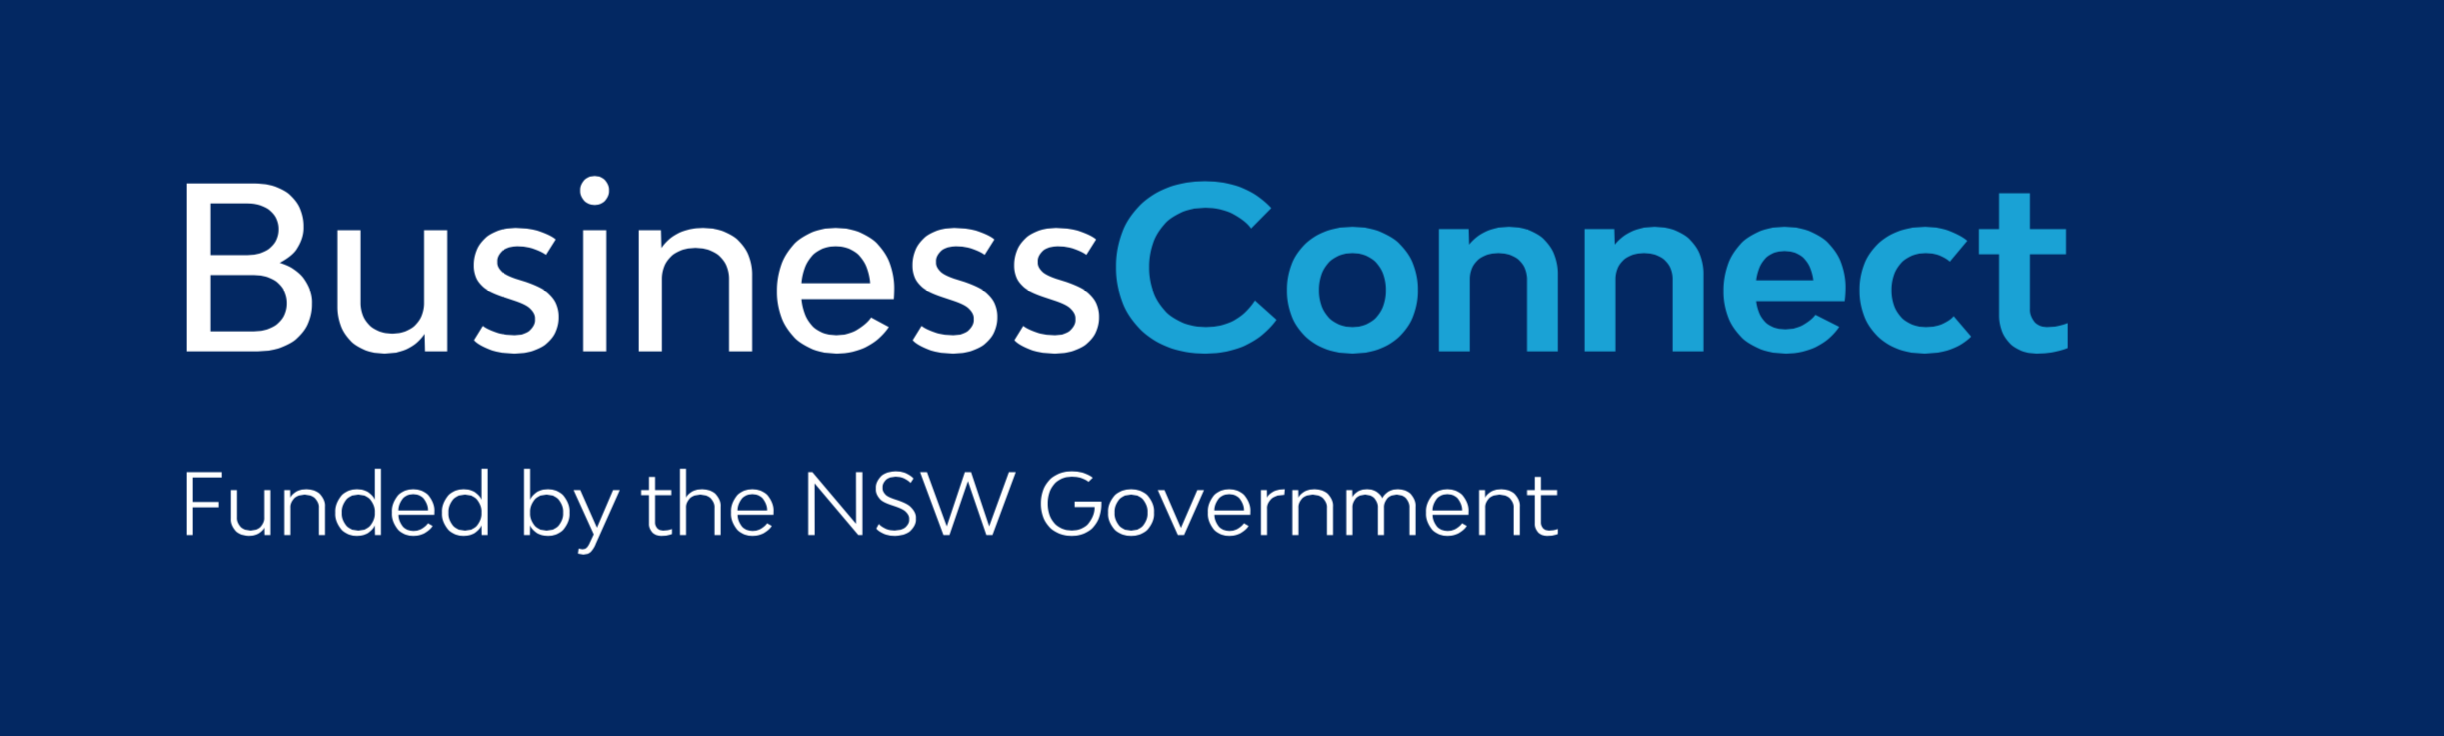 NSW Business Connect logo